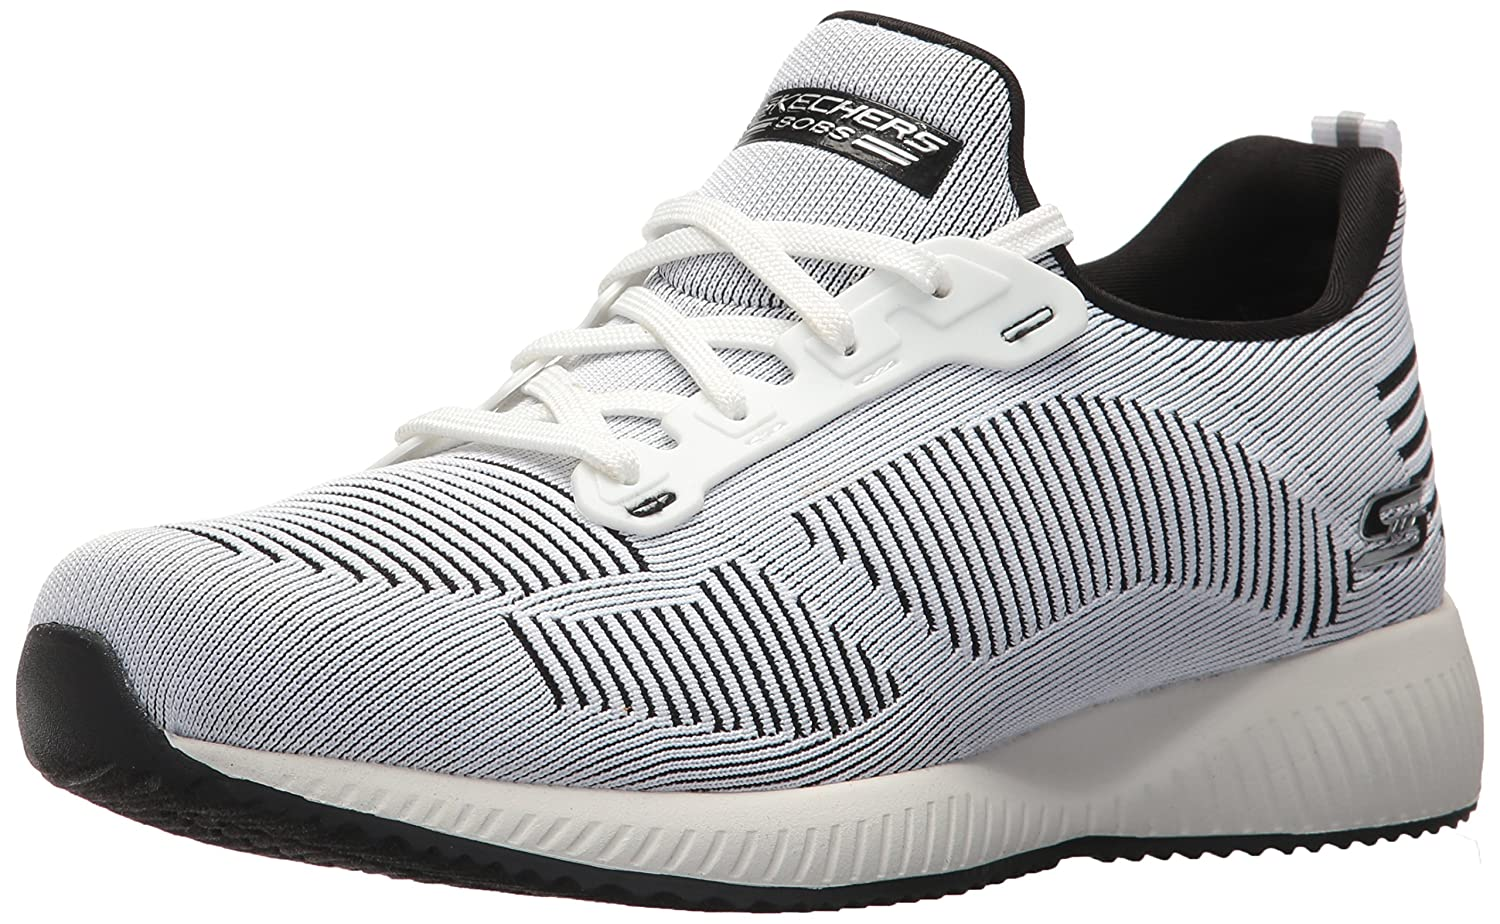 Skechers BOBS from Women's Bobs Squad-Twinning Fashion Sneaker B07263CYW5 5.5 B(M) US|White/Black